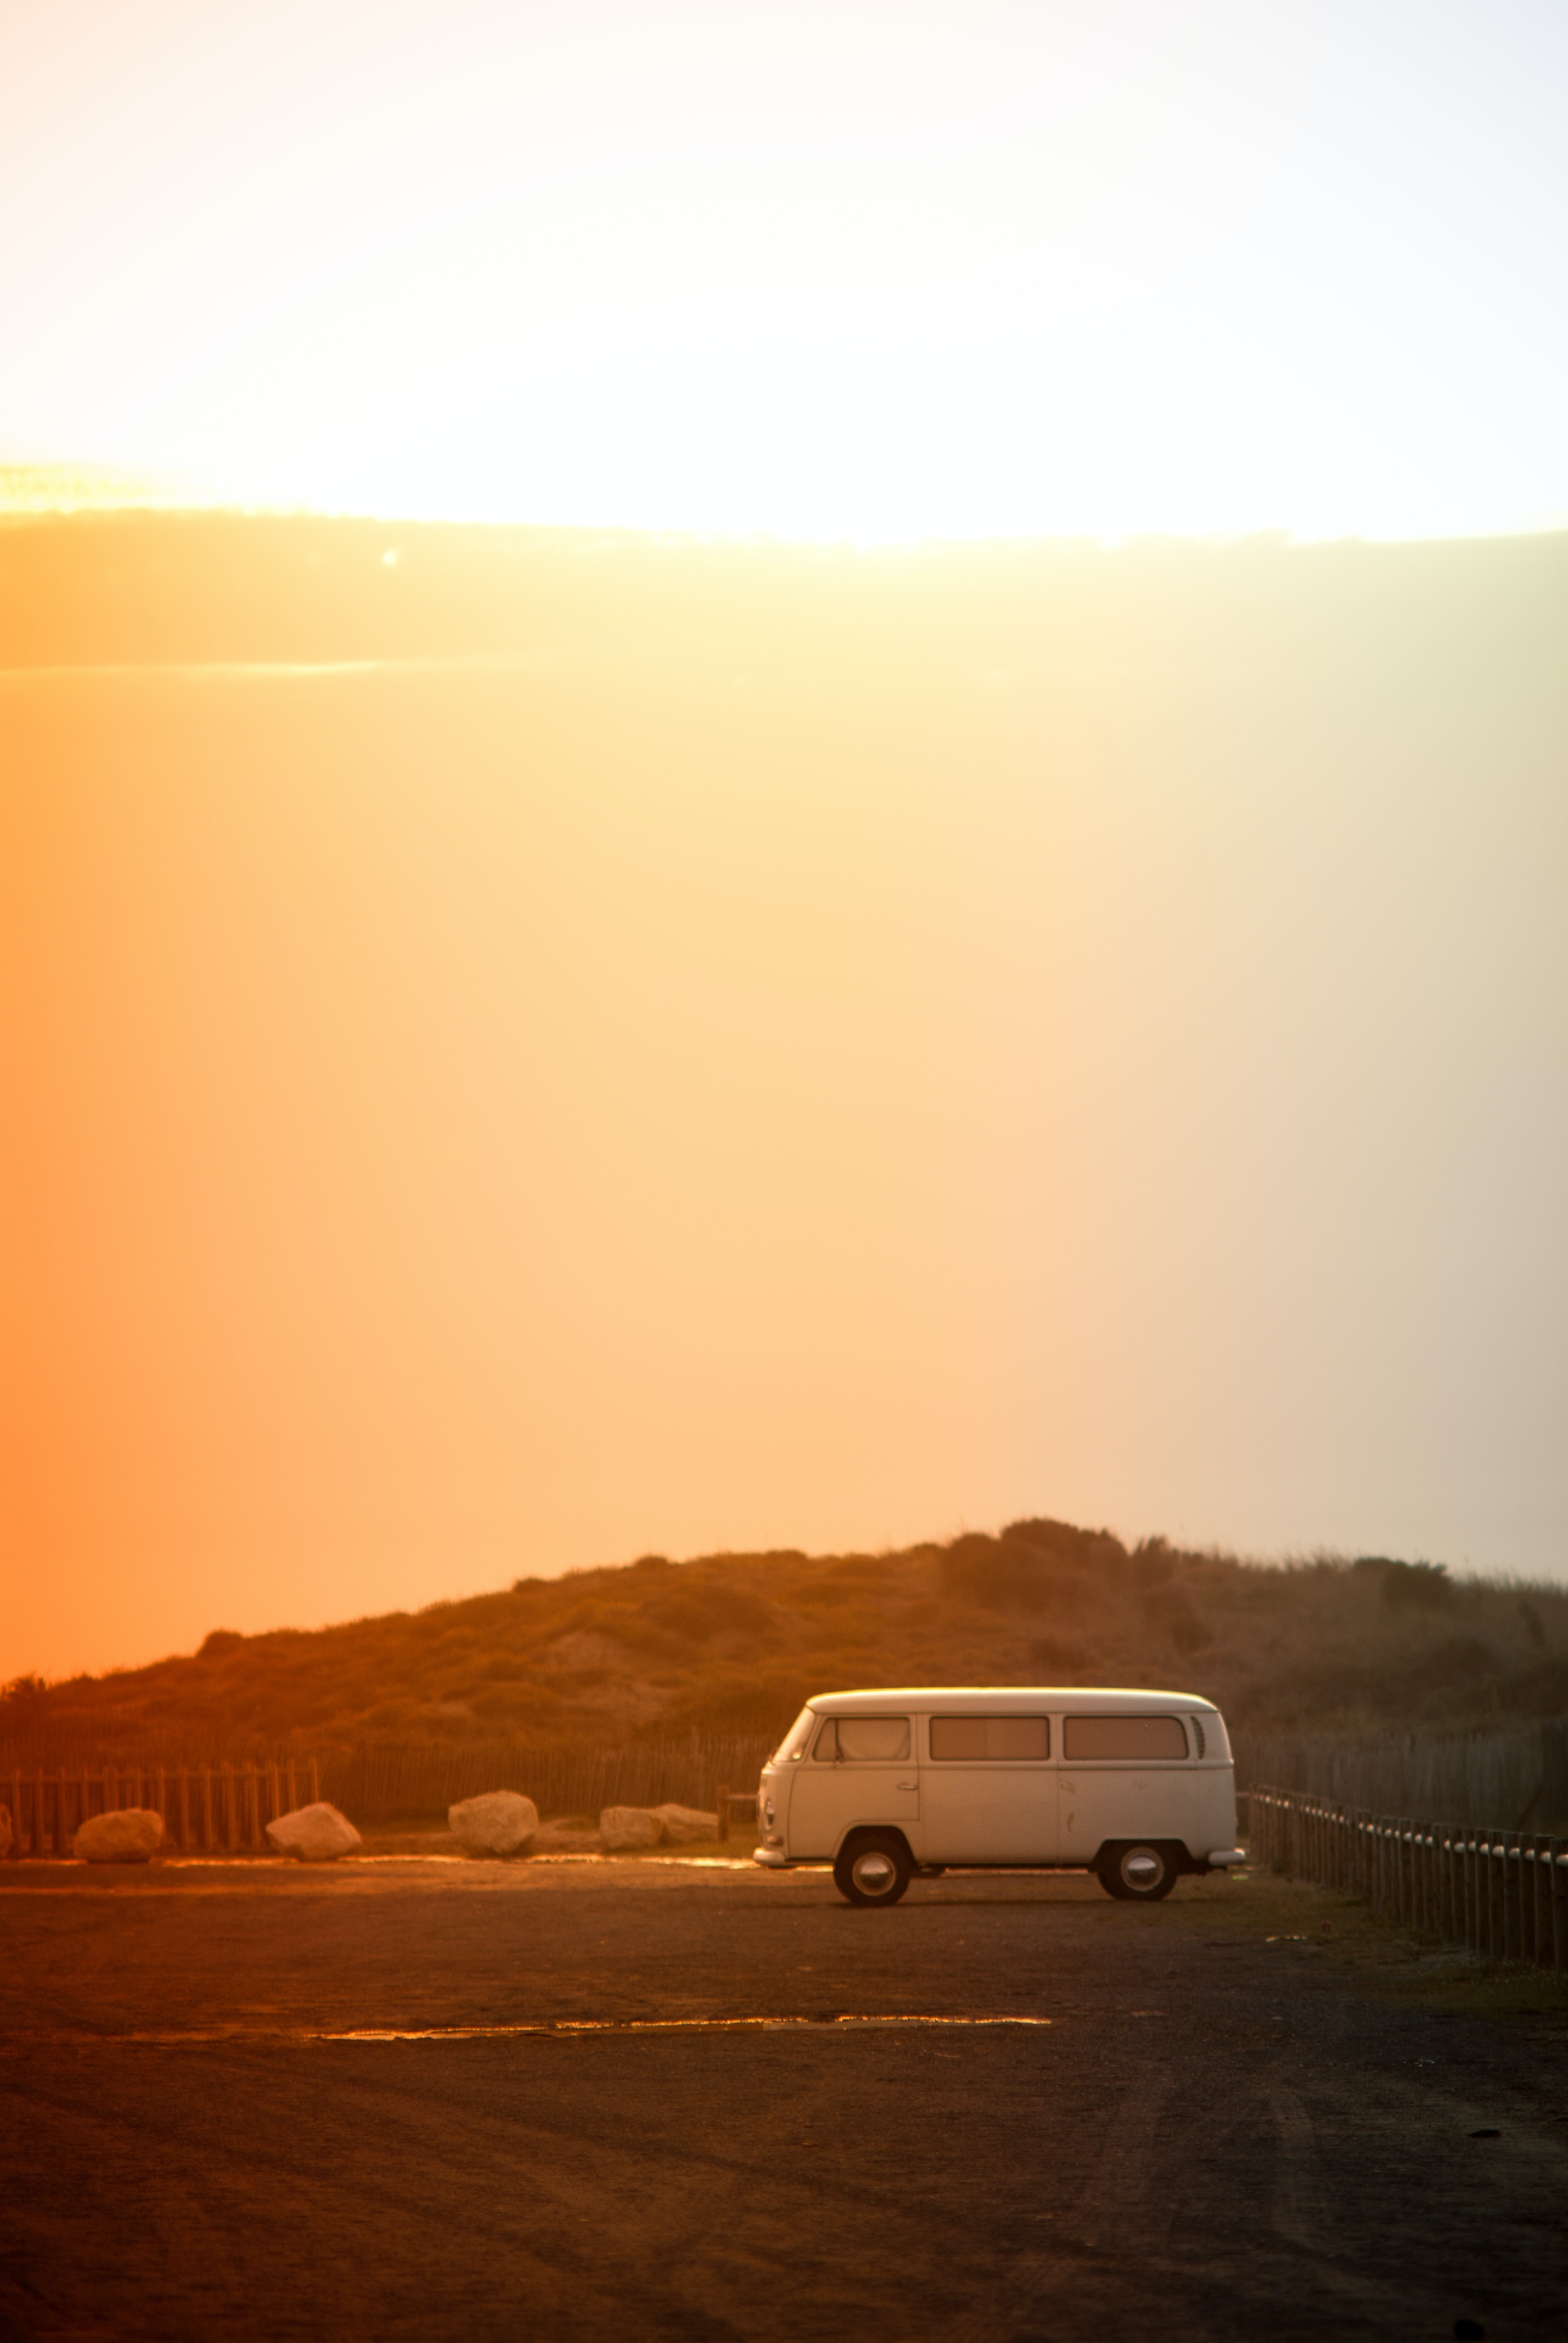 Vintage VW van parked on the side of the desert road